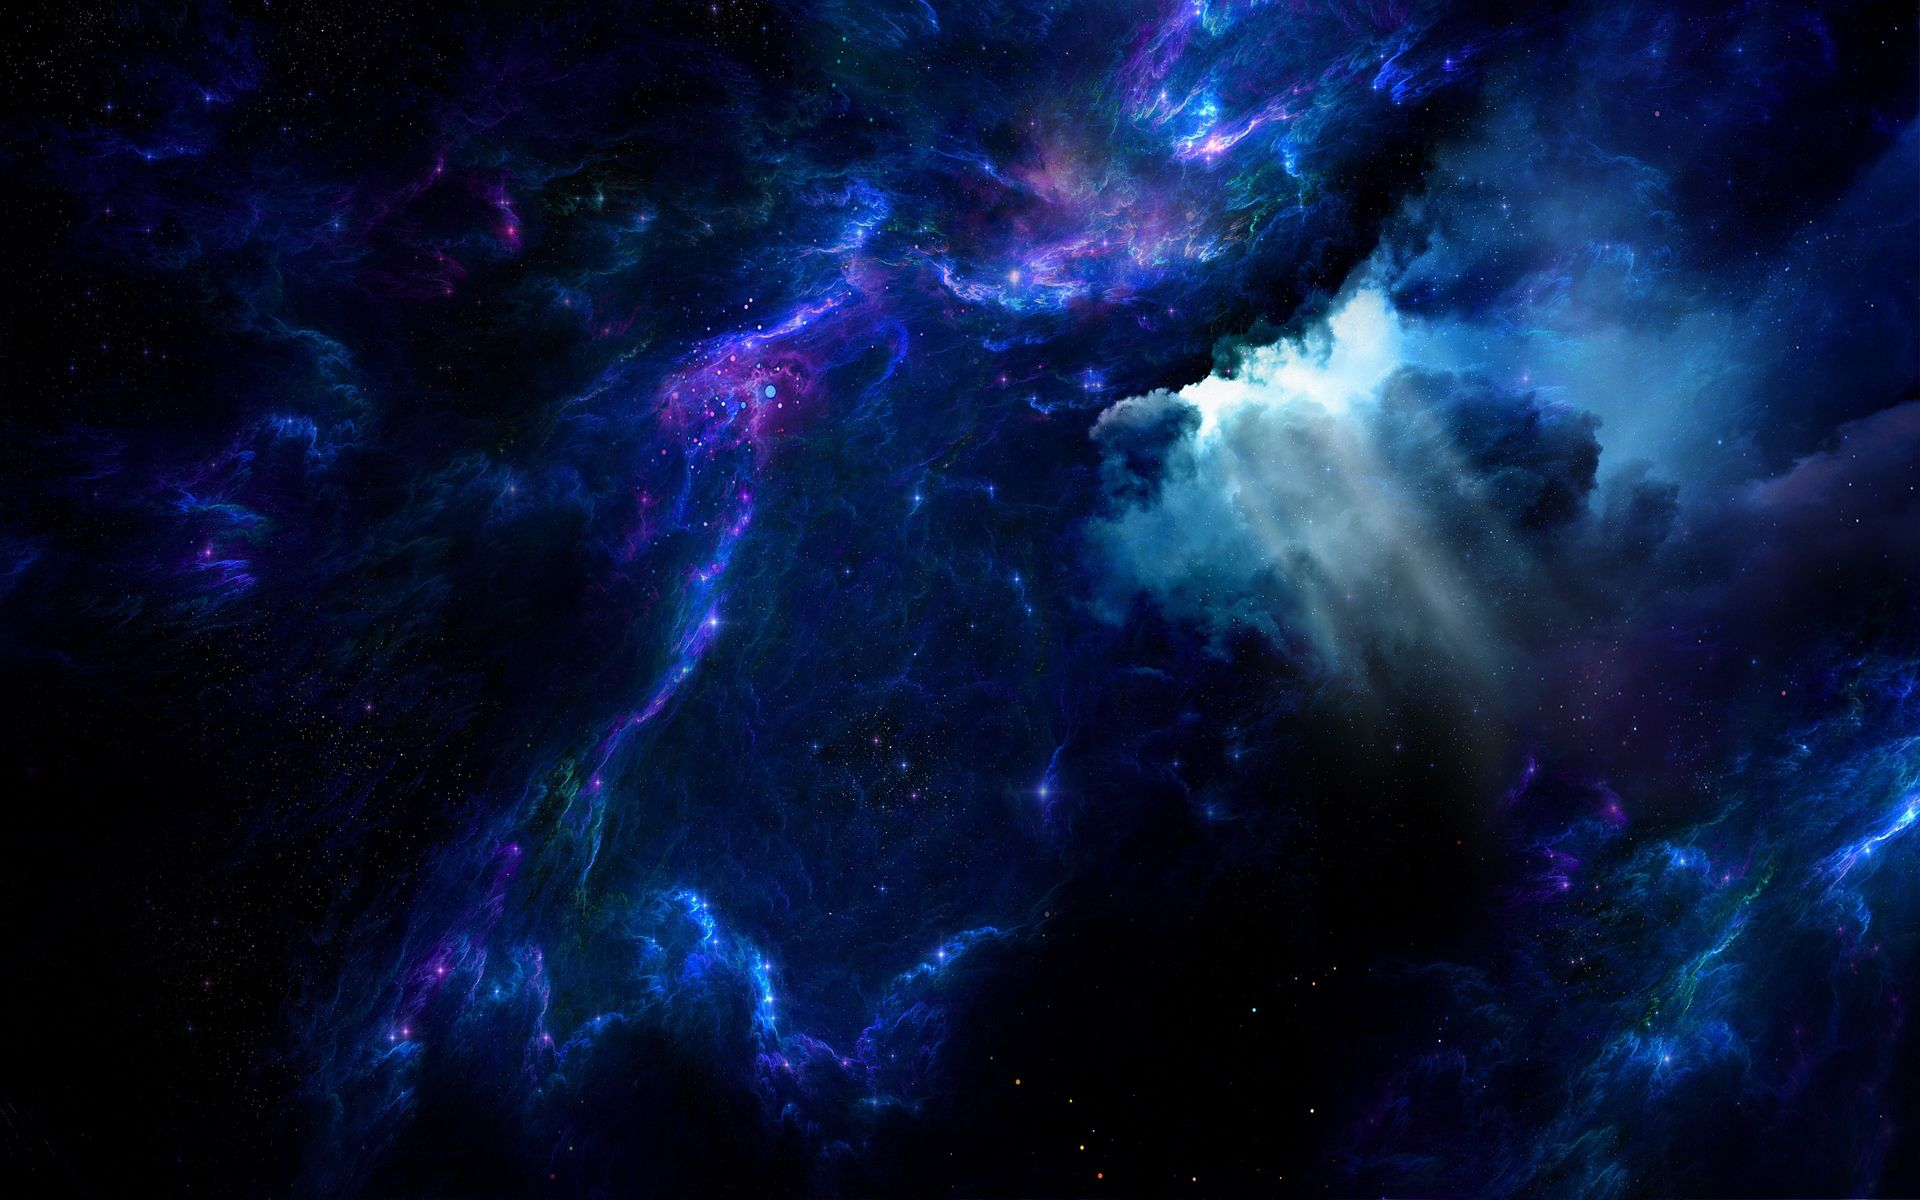 sci fi nebula cgi space blue stars wallpaper desktop